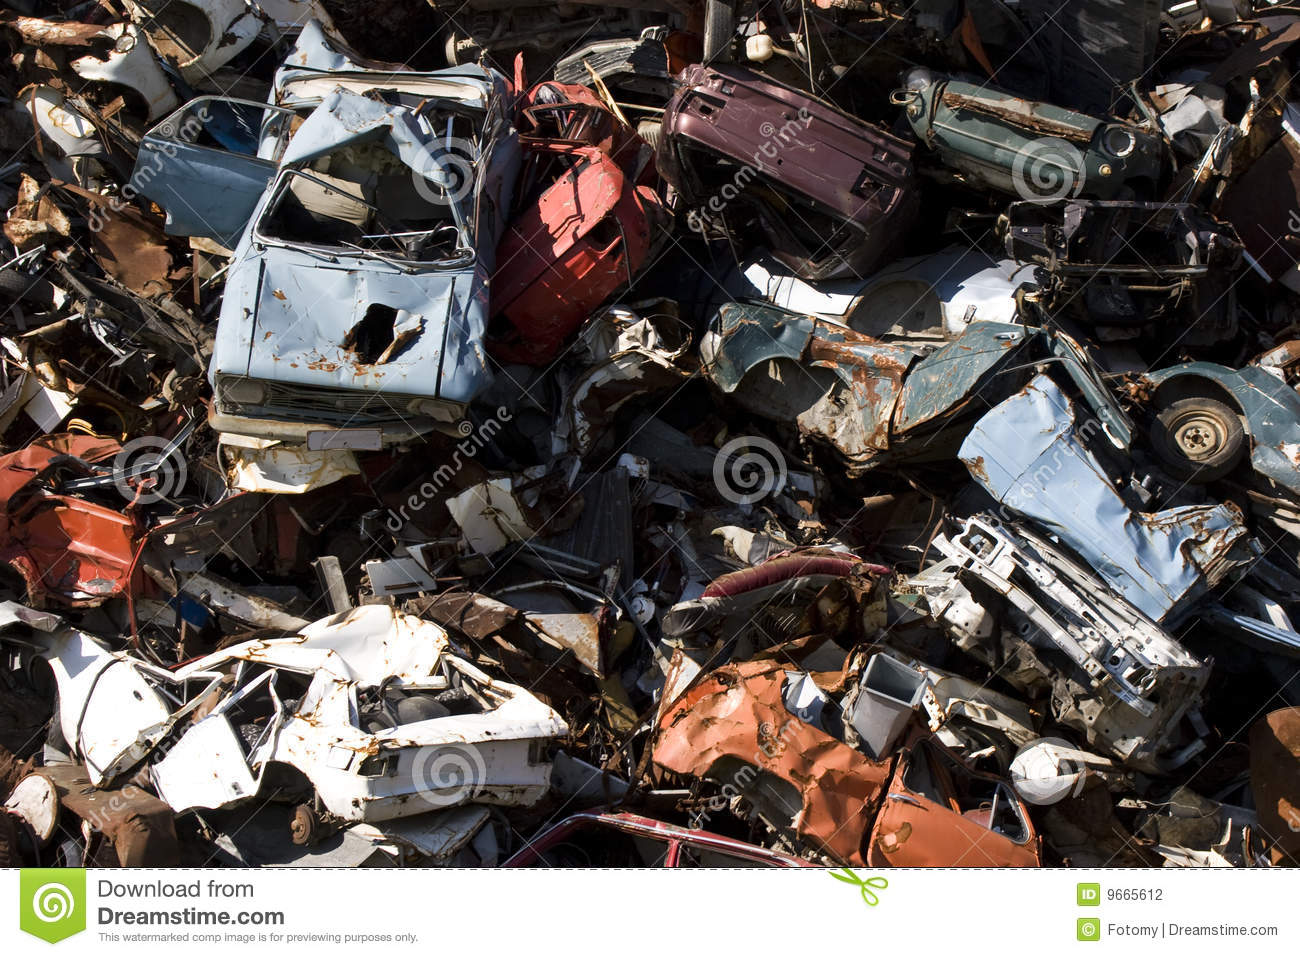 Scrap Metal Prices Cars >> Old Rusting Cars In A Junk Yard Stock Photography - Image: 9665612